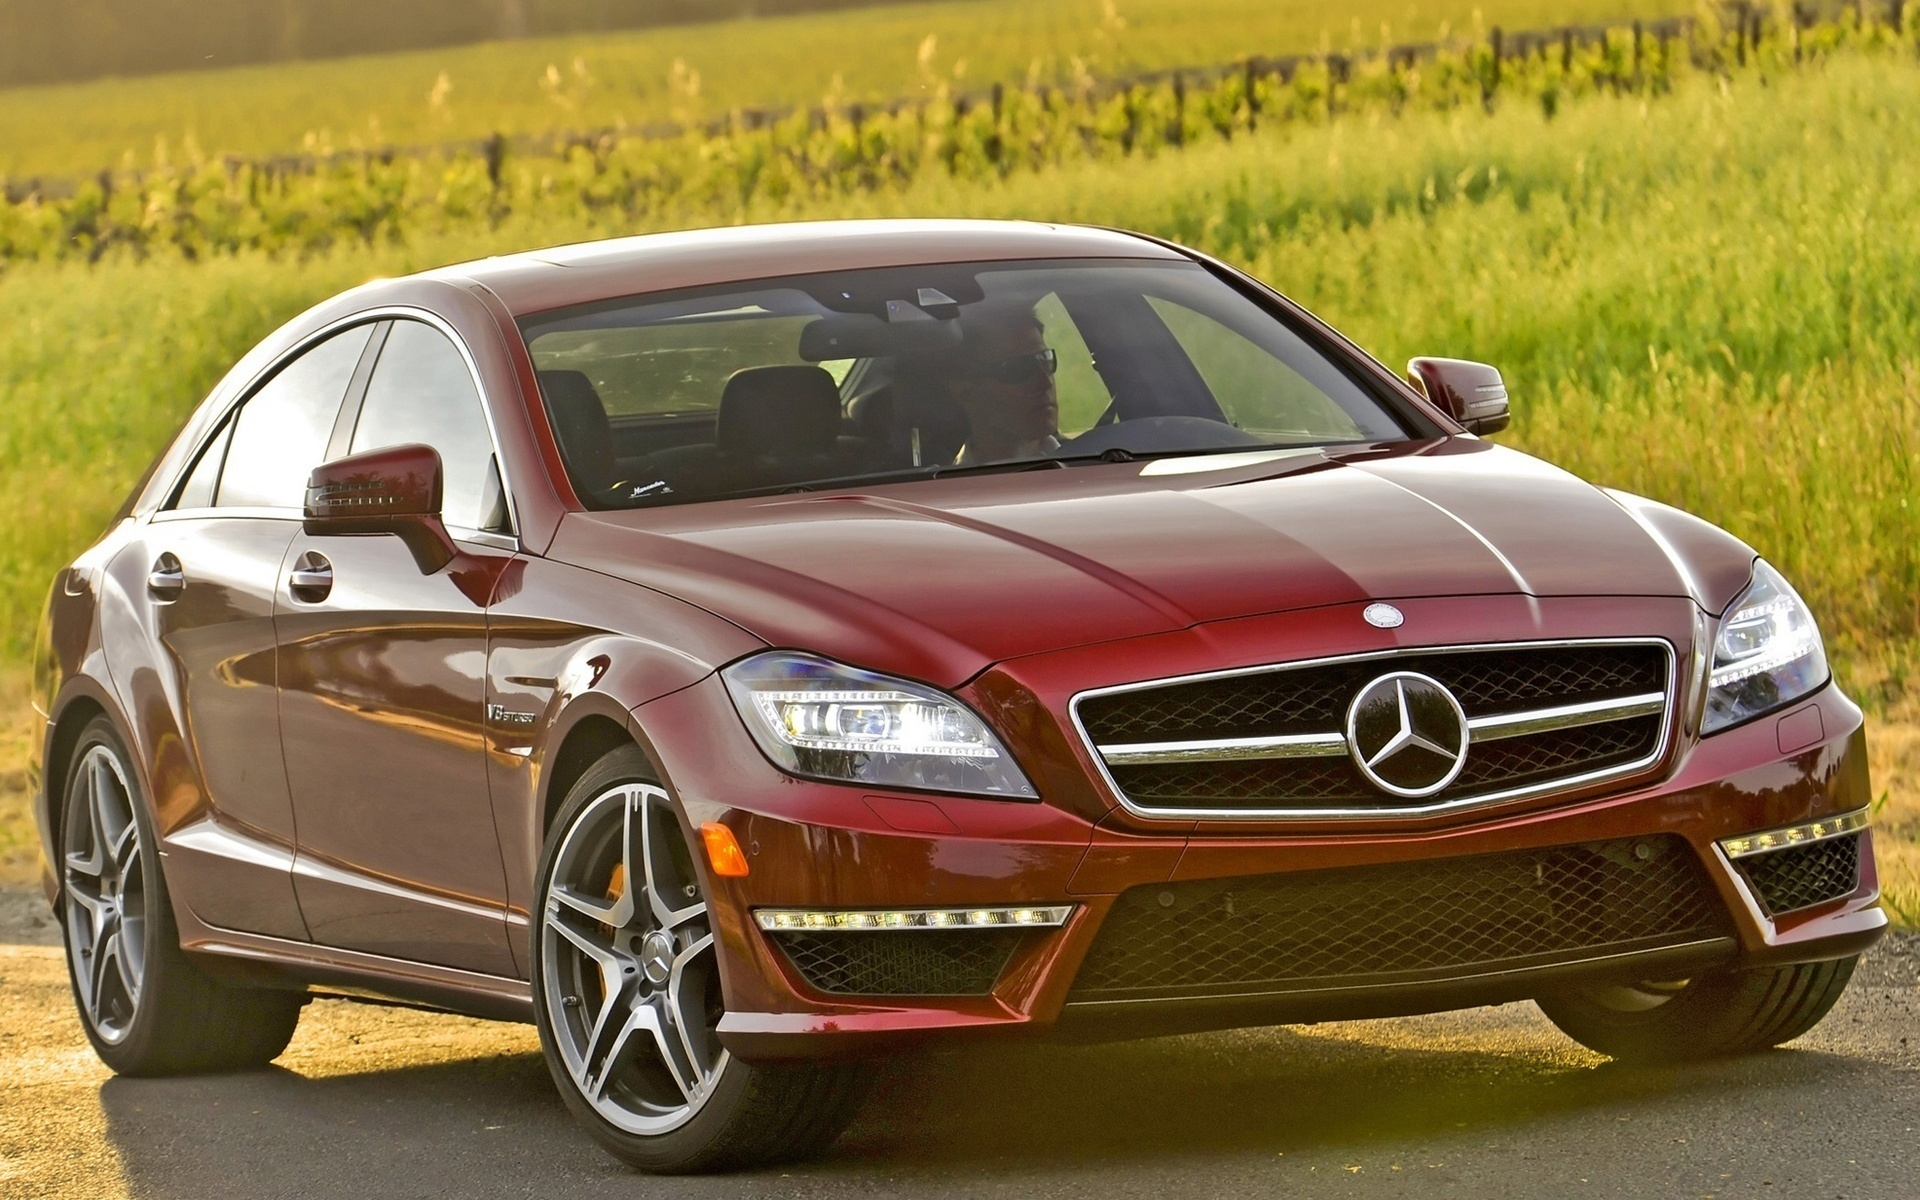 2012 mercedes benz cls coupe wallpapers 1920x1200 748172 for 1920 mercedes benz